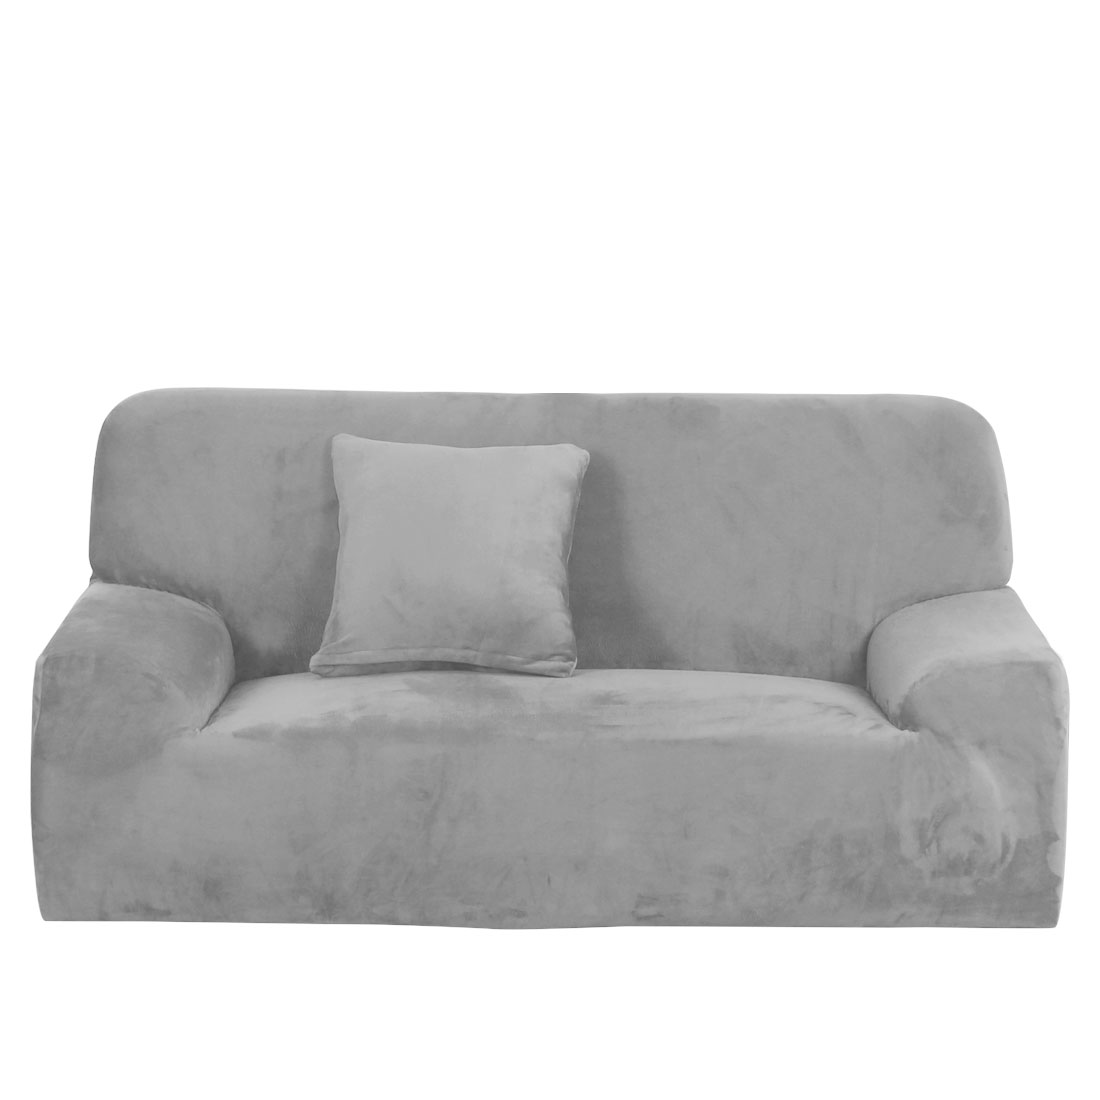 Sofa Slipcovers Flannel Stretch Fabric Sofa Slipcovers For Chair Loveseats Couch 1 2 3 4seats